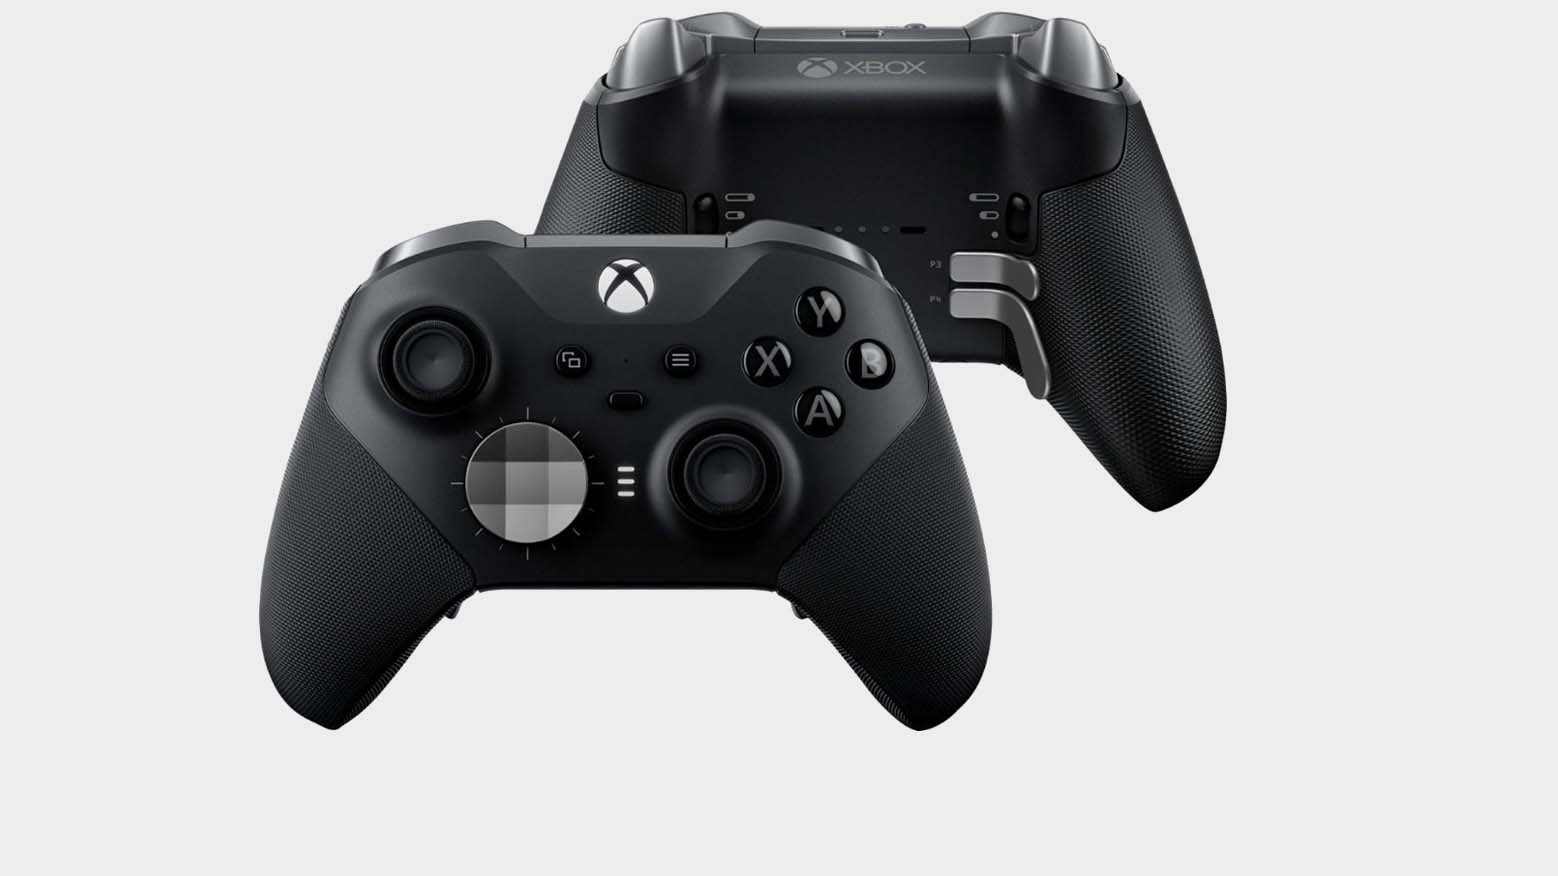 Steam client beta adds extended support for PS5 and Xbox controllers